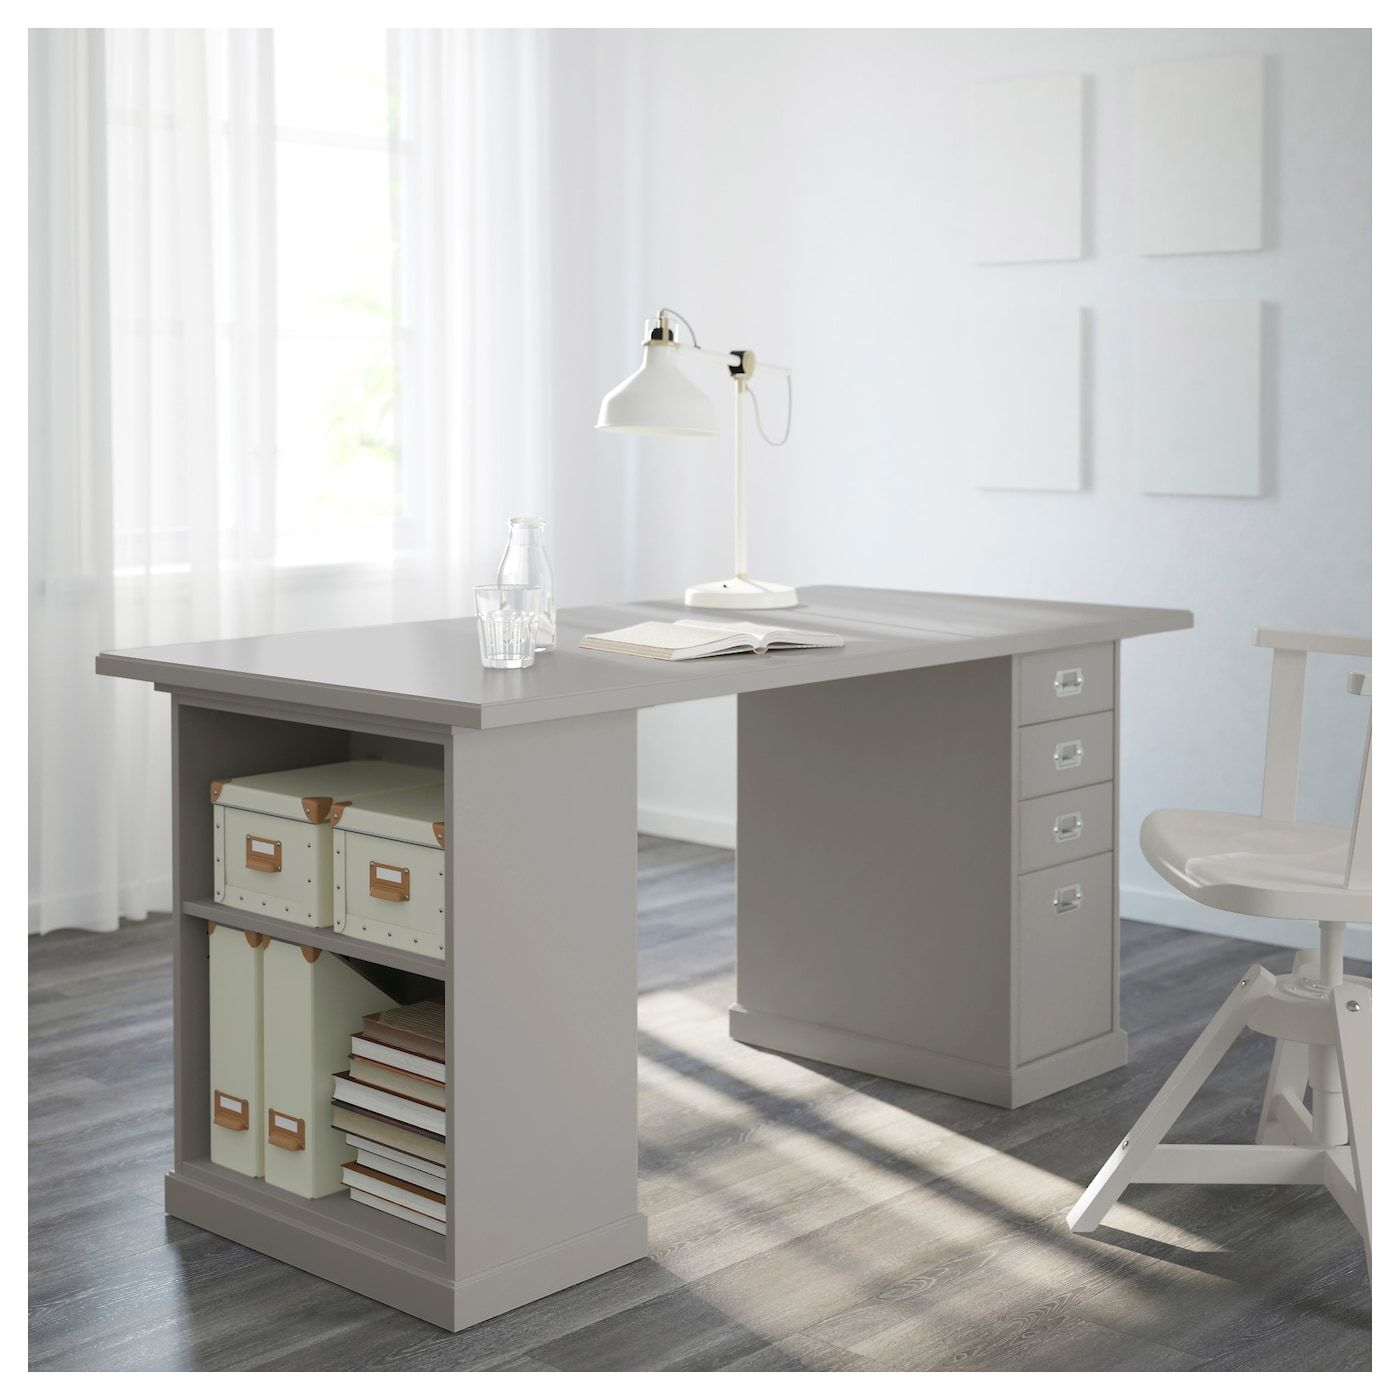 Ikea Klimpen Table Home Office Design Ikea Home Office Furniture